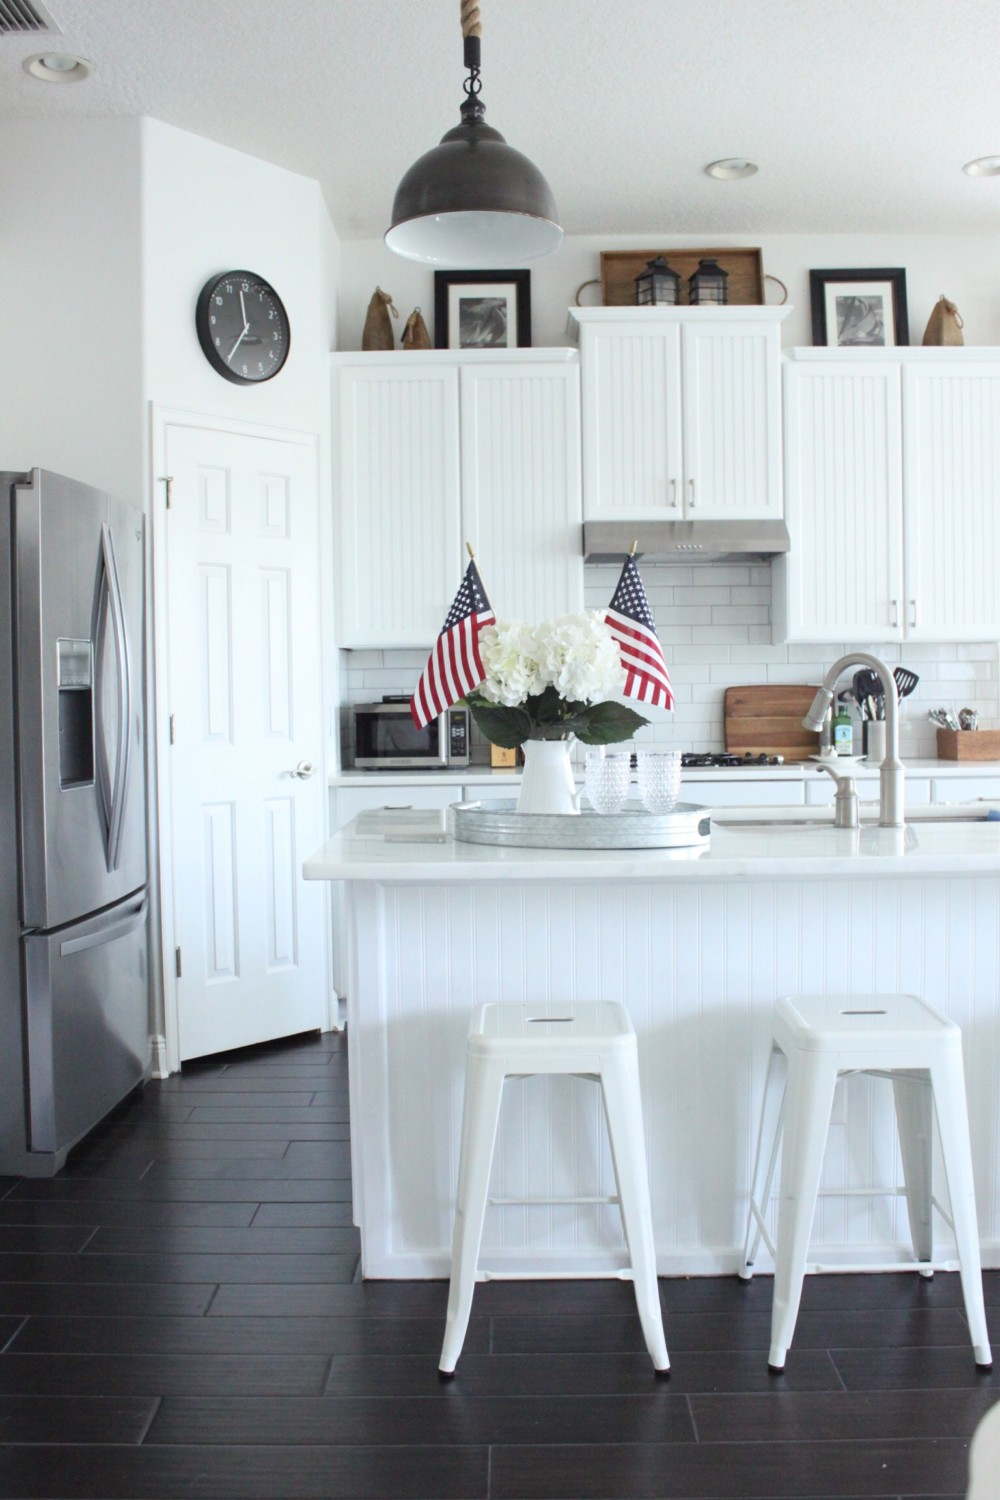 Red White and Blue for the Kitchen - Starfish Cottage